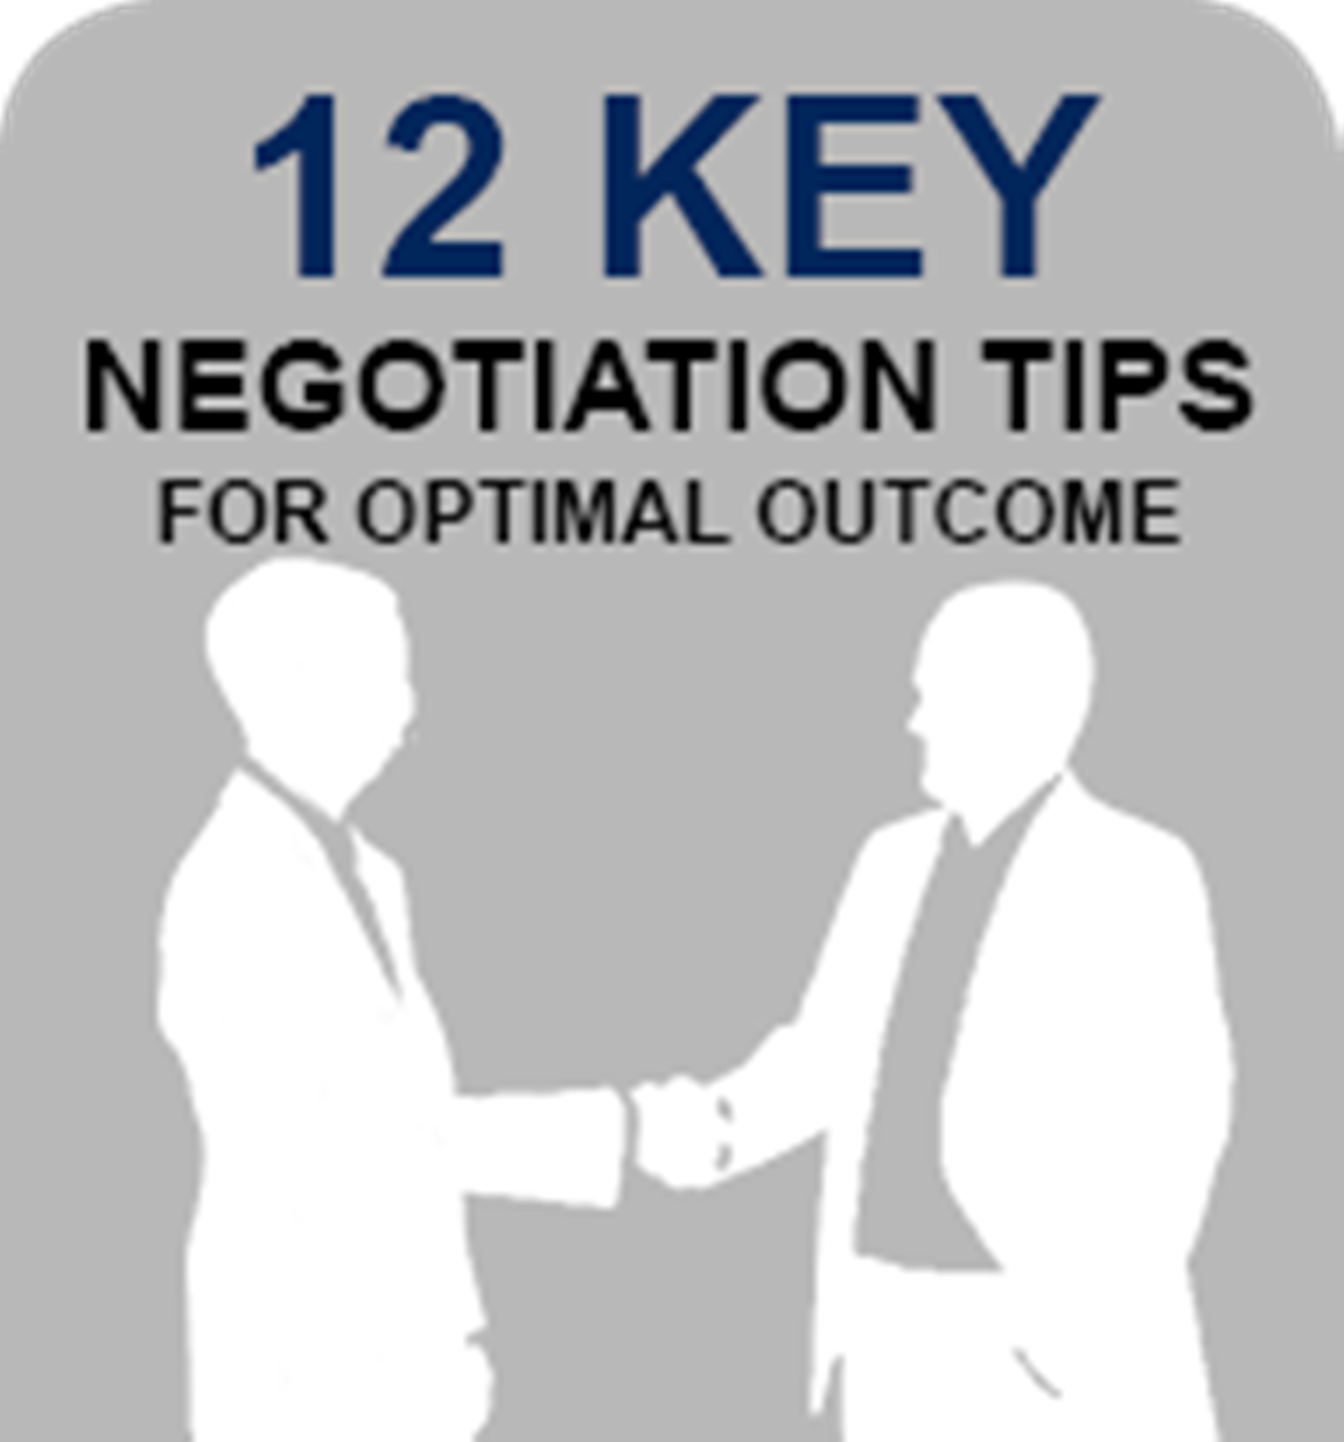 Tech M&A Monthly: M&A Negotiation Tips #1 & 2